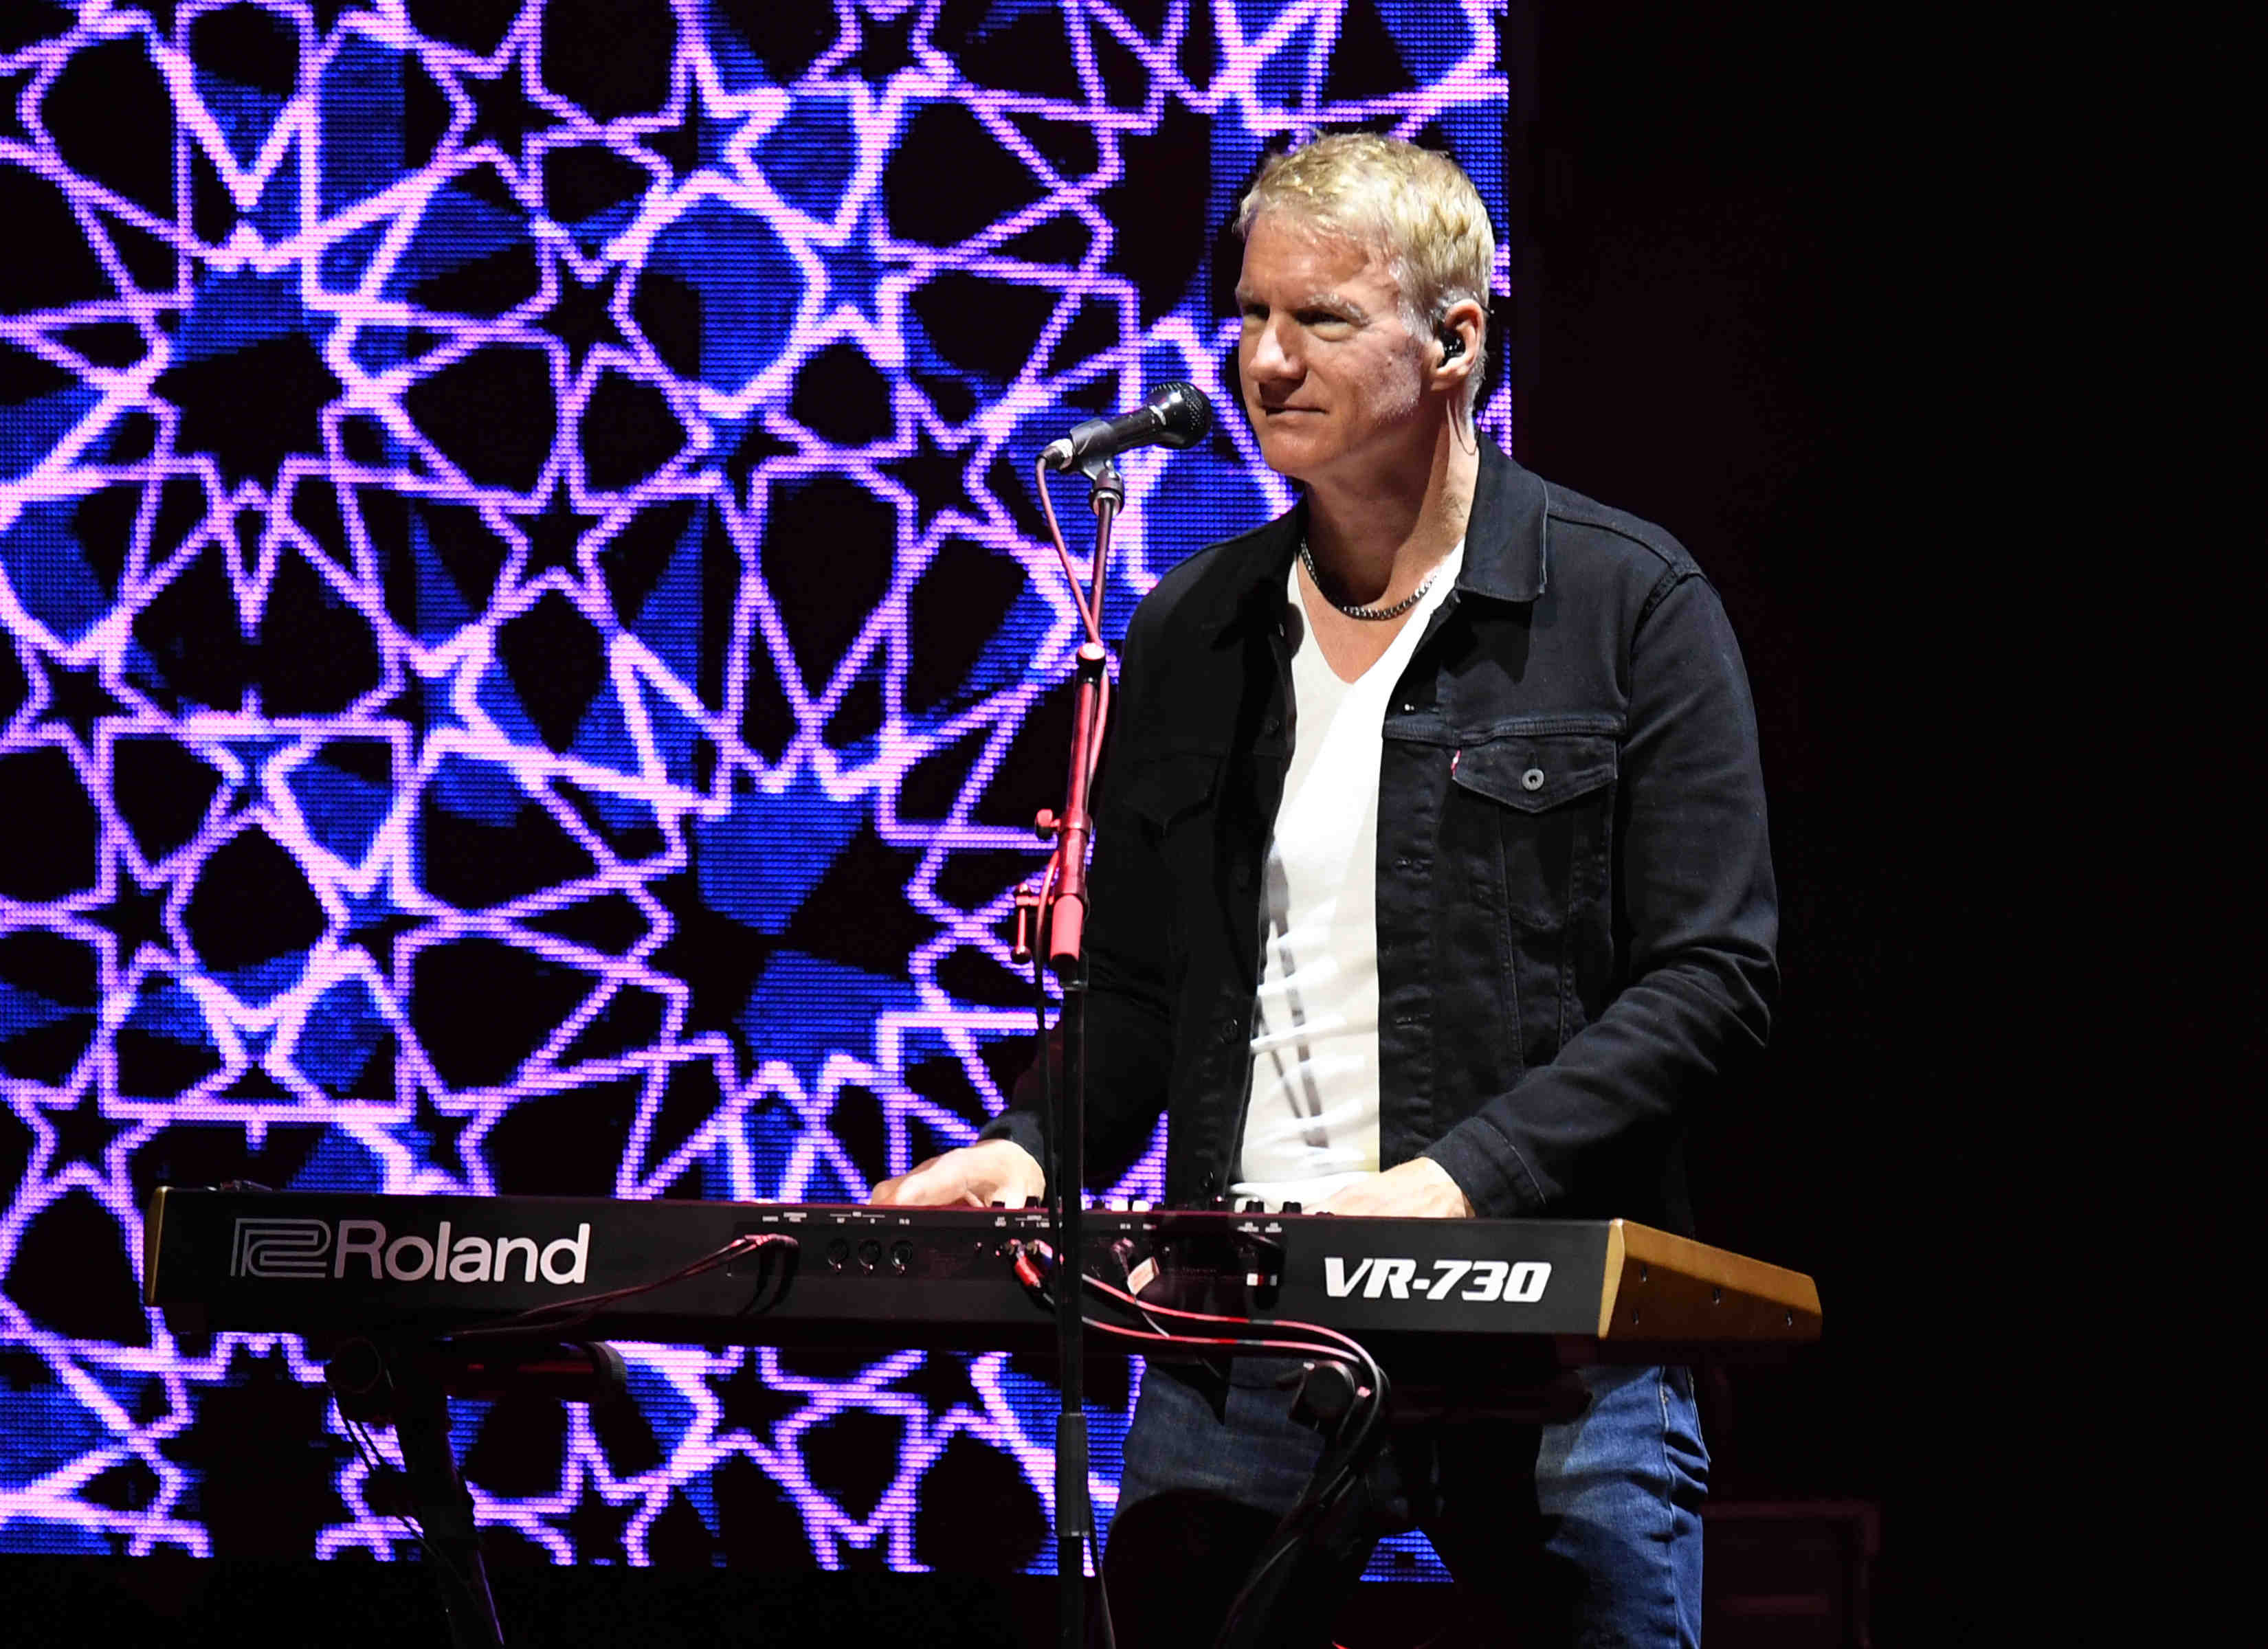 Hall and Oates keyboard player.